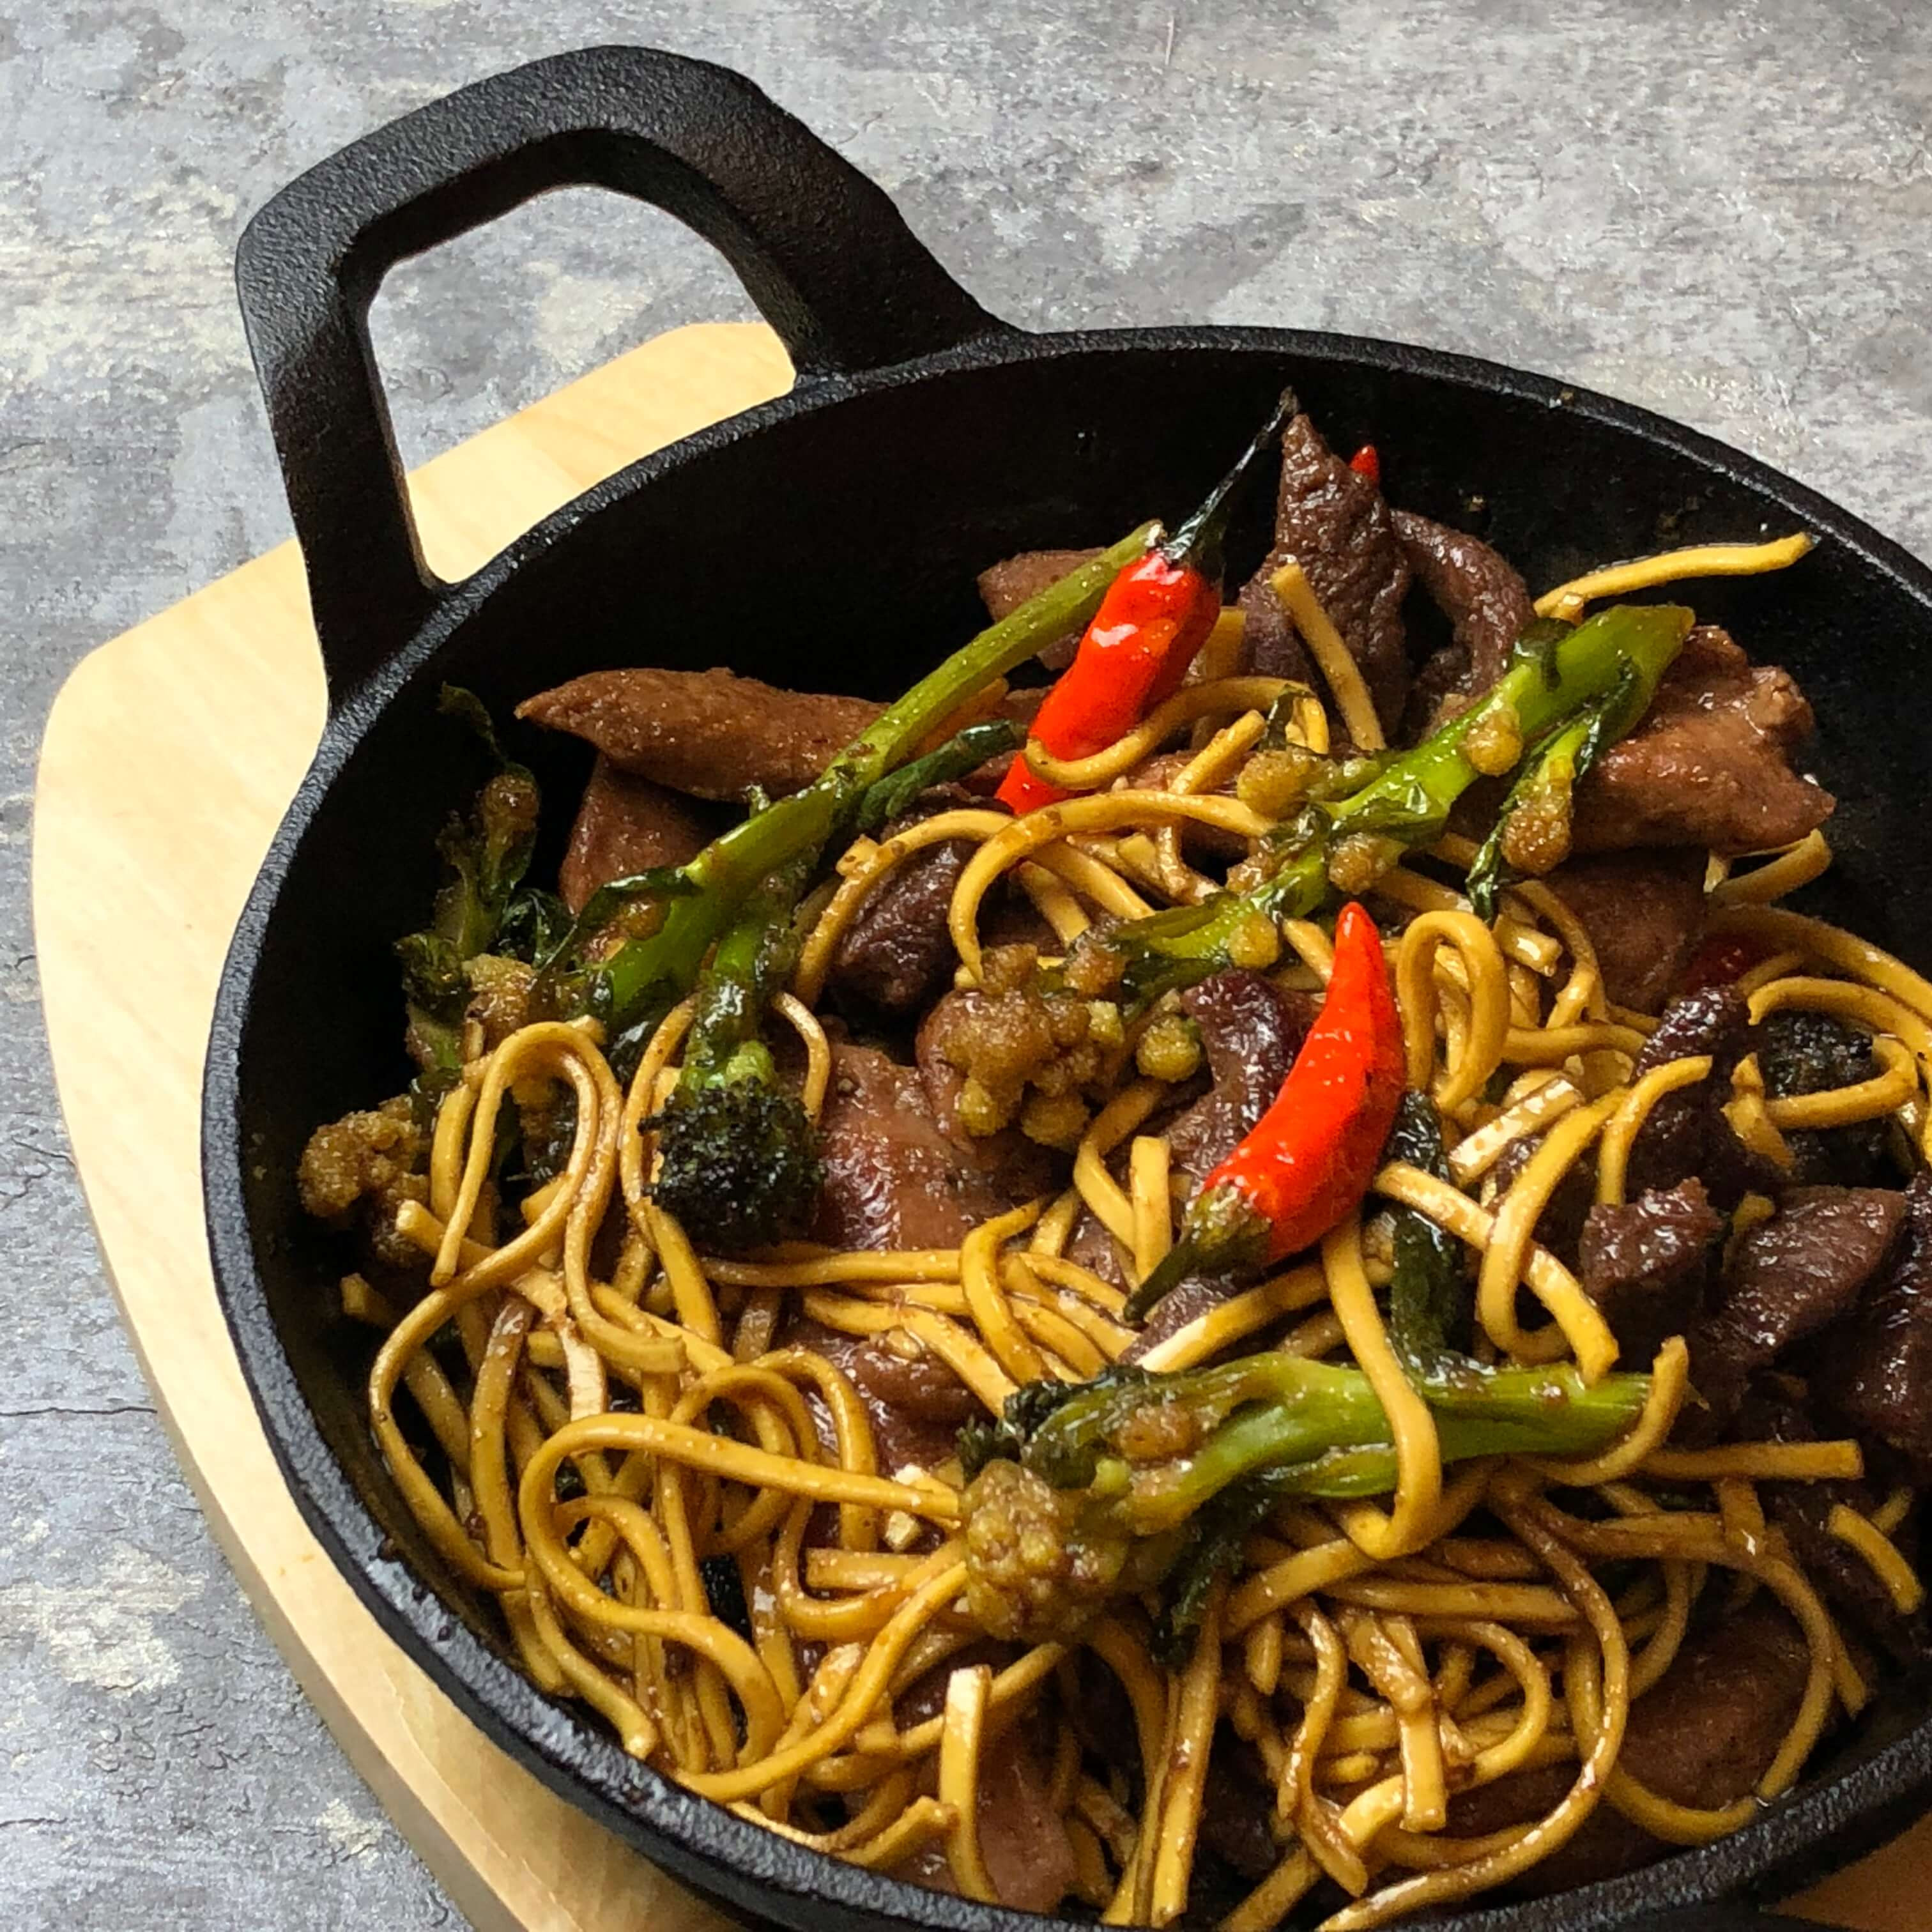 Nate's Duck & Beef Stir Fry Recipe